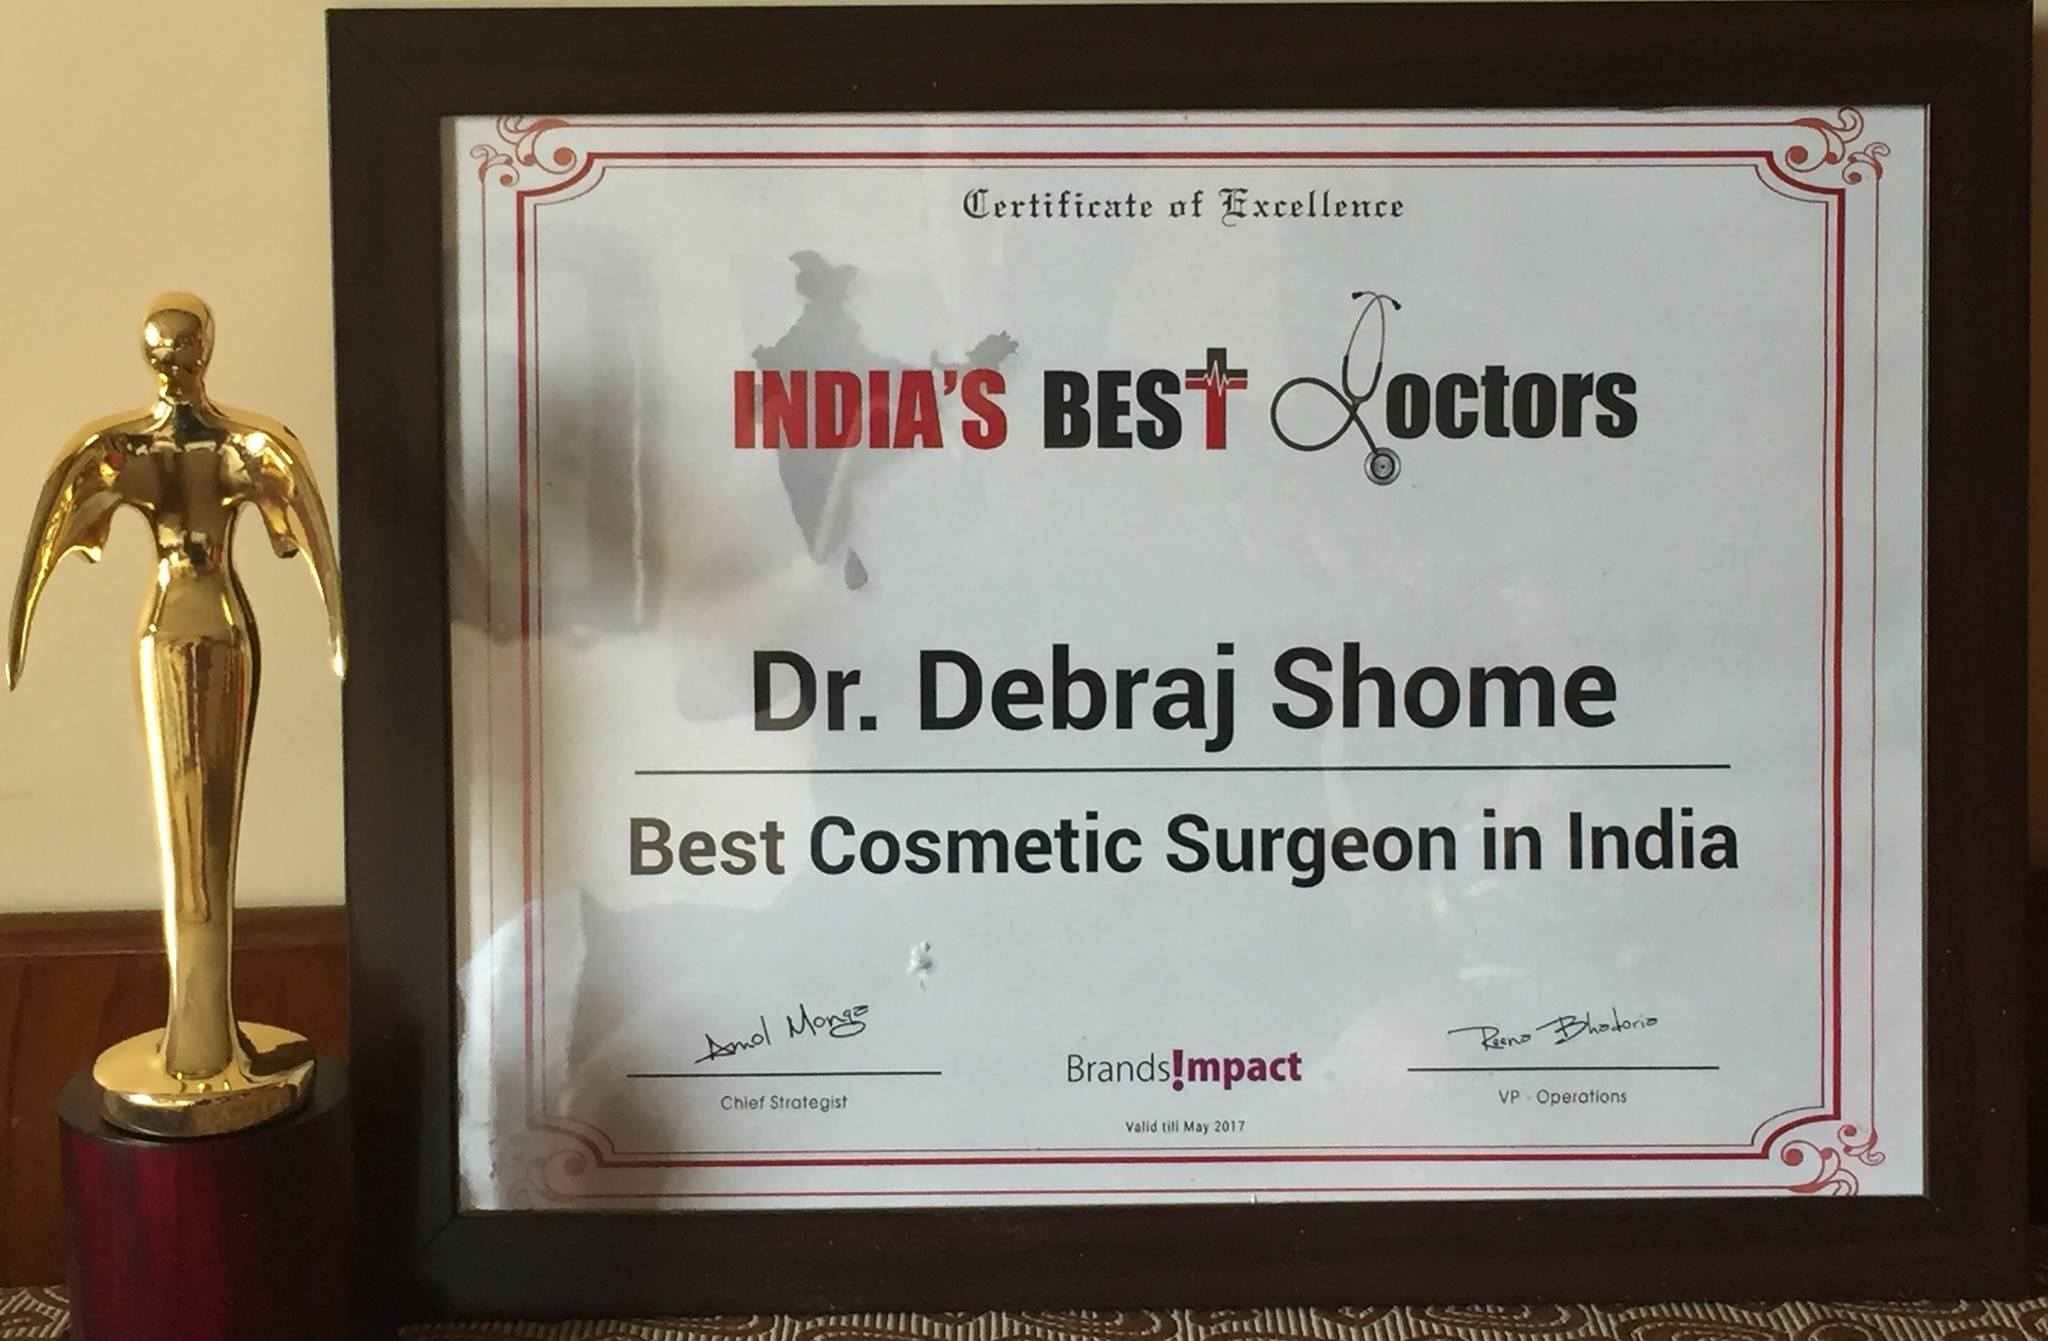 Dr-Debraj-Shome-Best-Cosmetic-Surgery-in-India-2